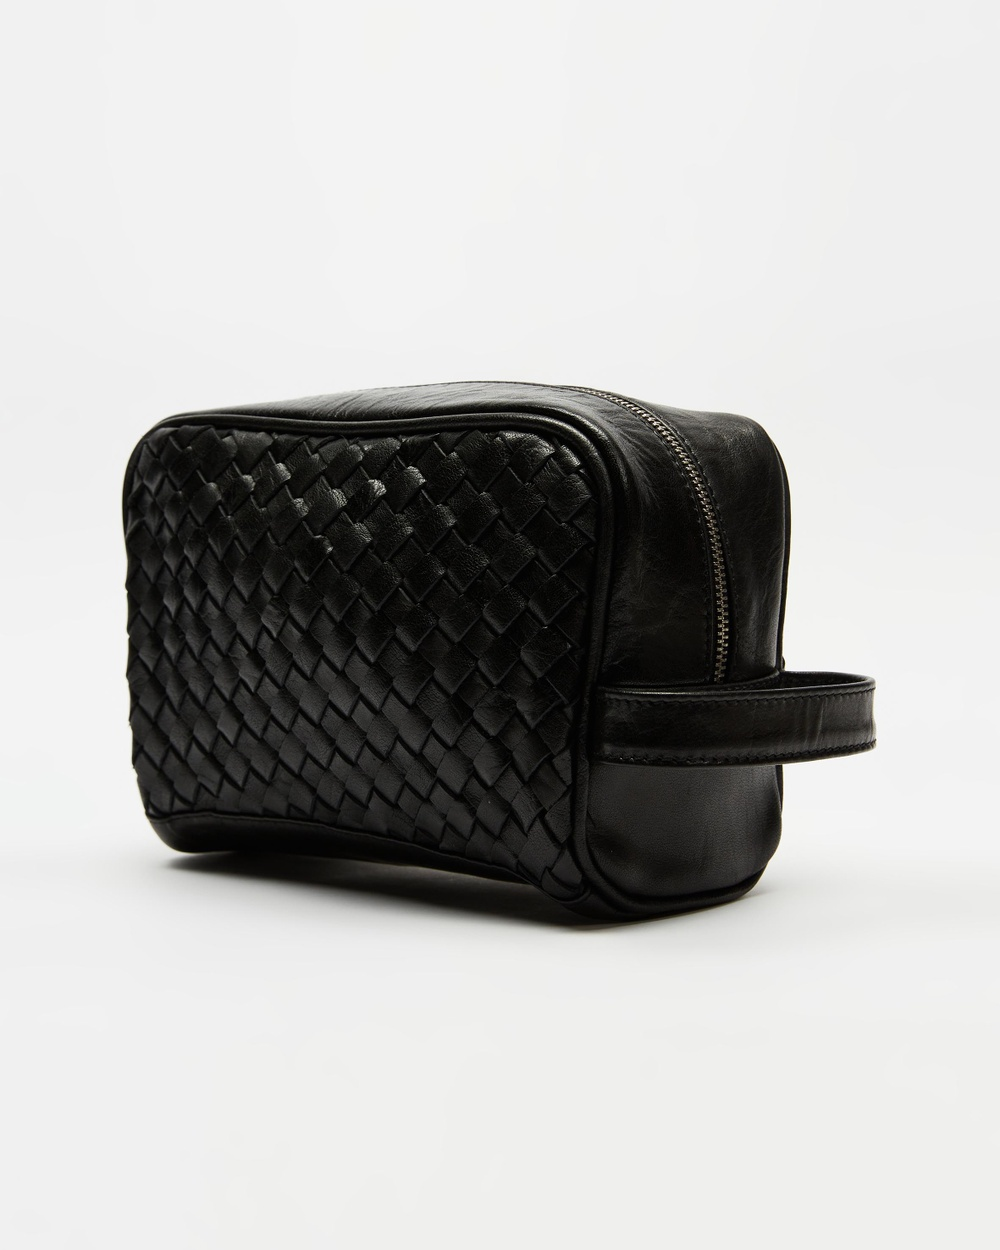 AERE Woven Leather Washbag Toiletry Bags Black